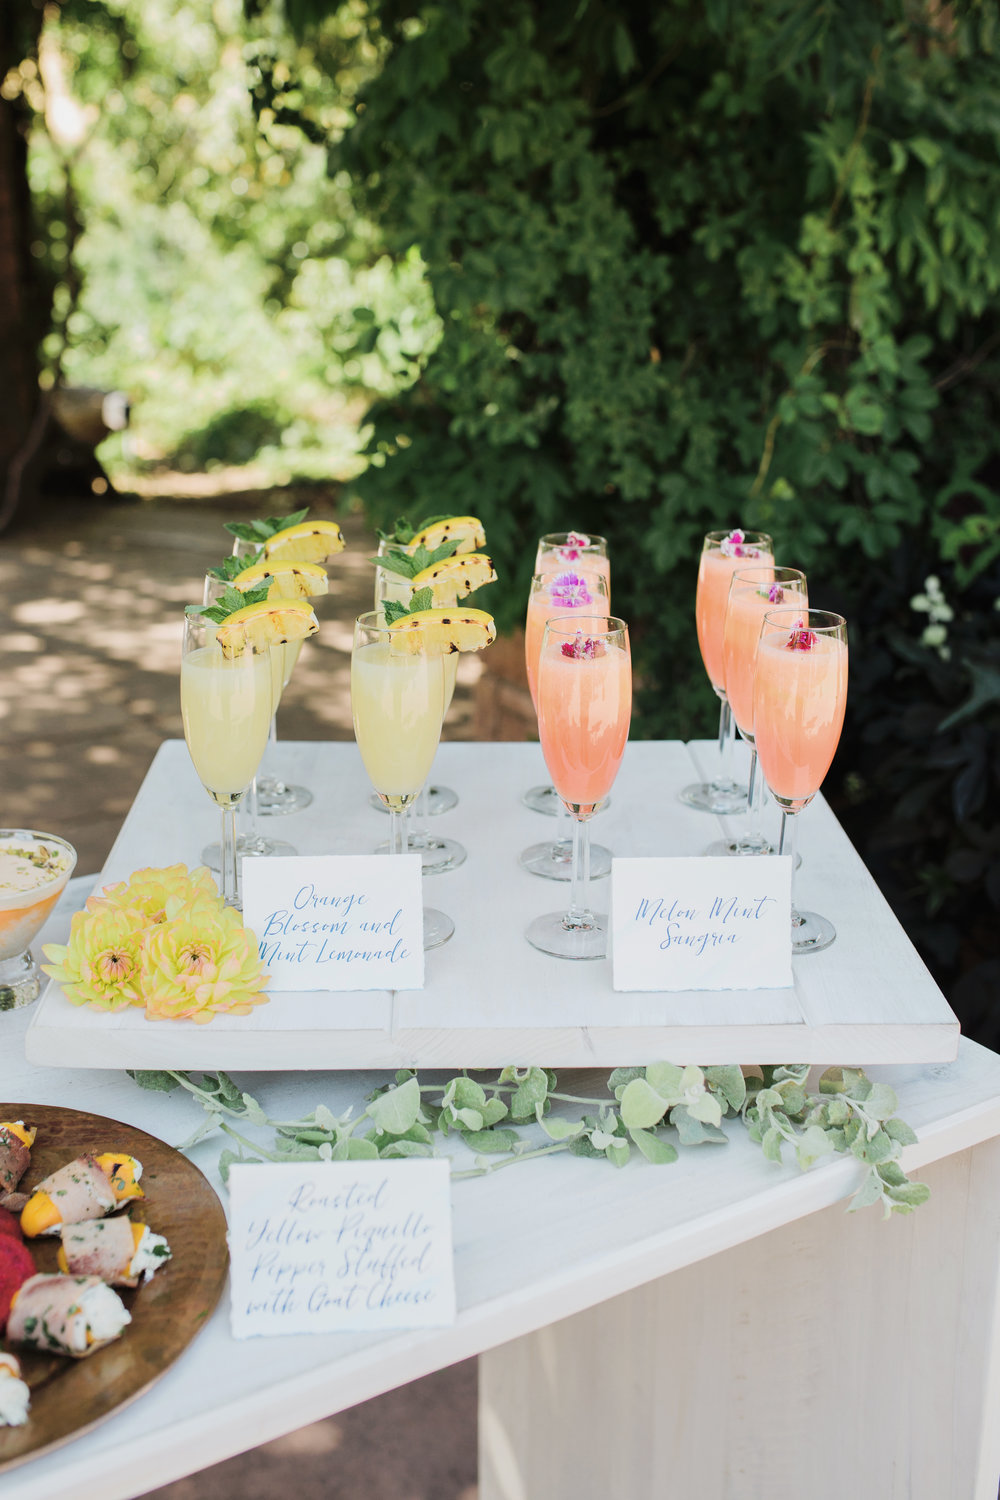 Bohemian-Desert Inspired Bridal Brunch Bites | Rocky Mountain Bride Magazine | Boho Wedding Inspiration | Michelle Leo Events | Utah Event Planner and Designer | Alixann Loosle Photography